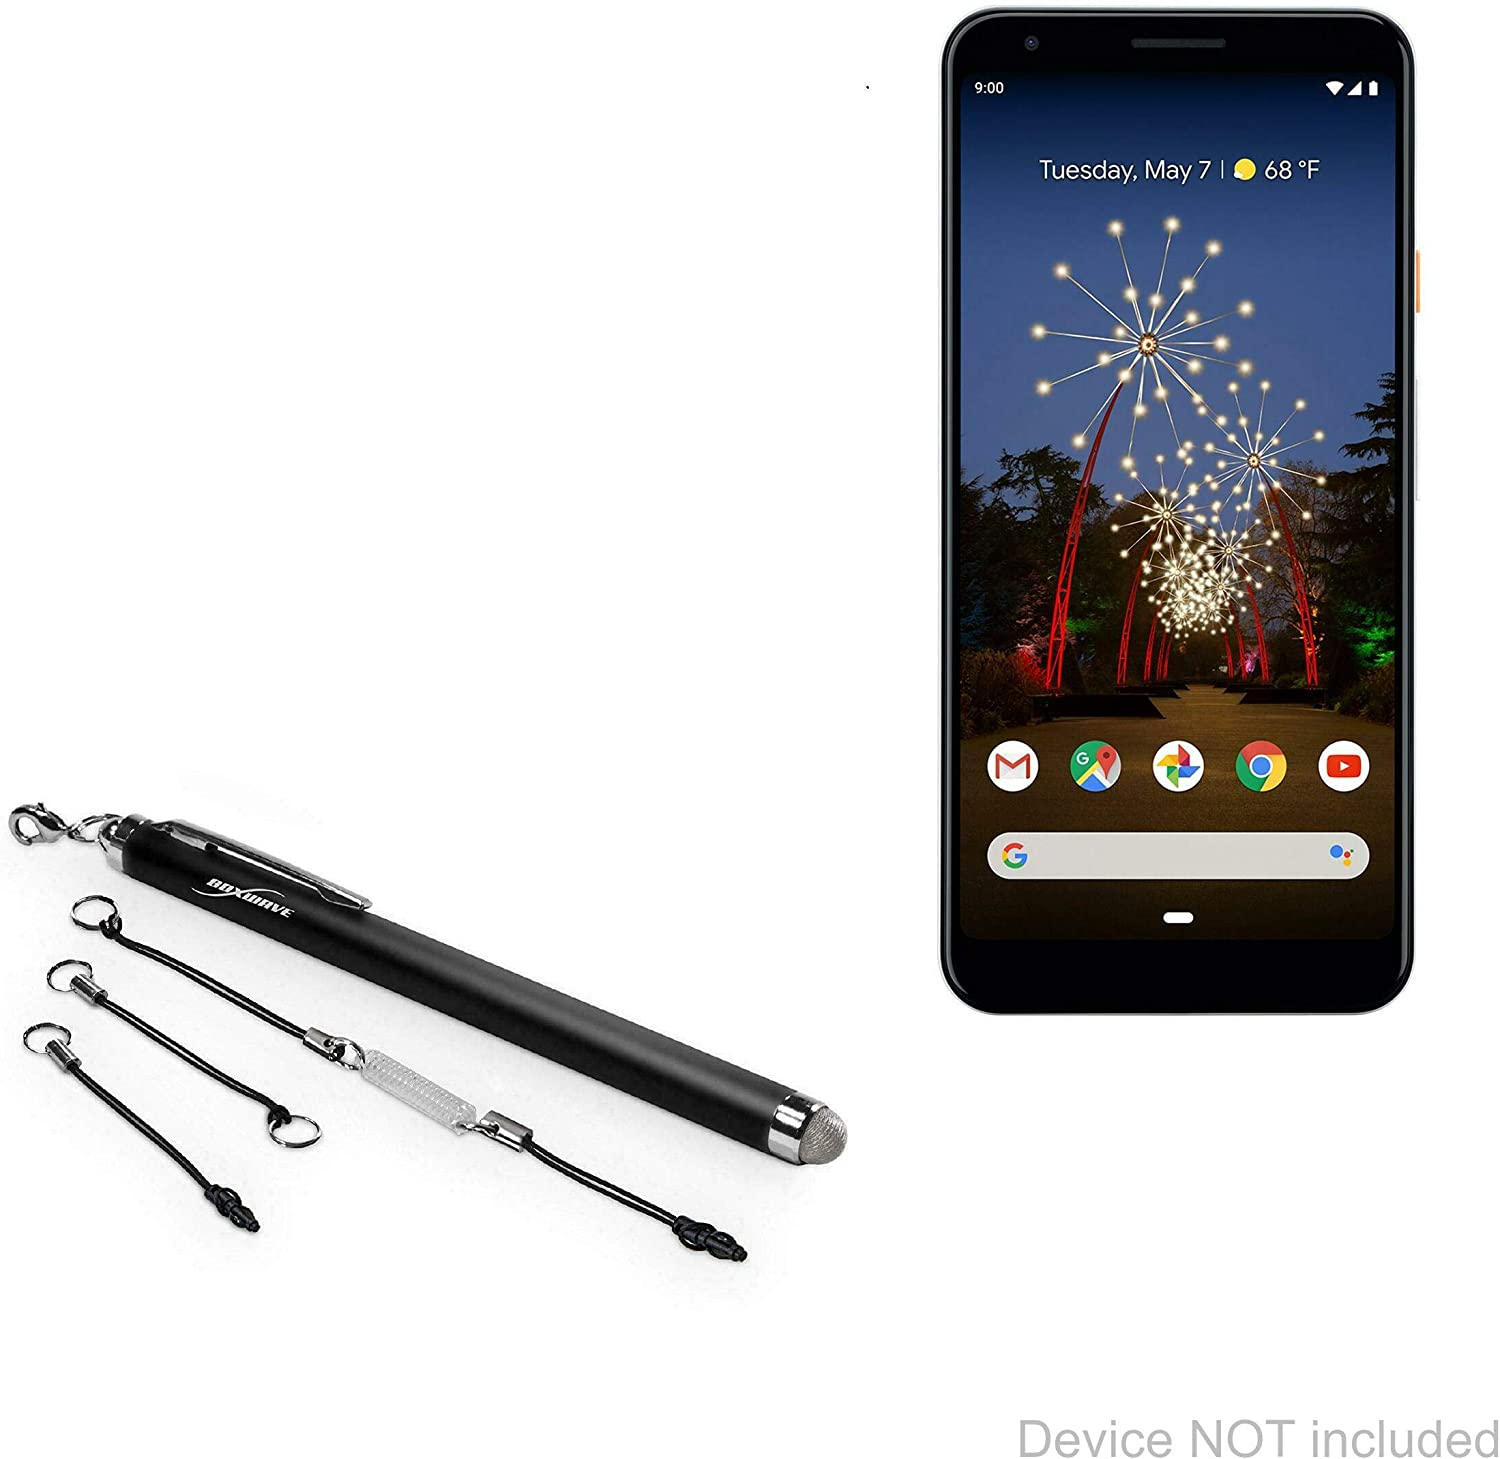 Stylus Pen for Google Pixel 3a by Max Milwaukee Mall 67% OFF - Ever XL BoxWave